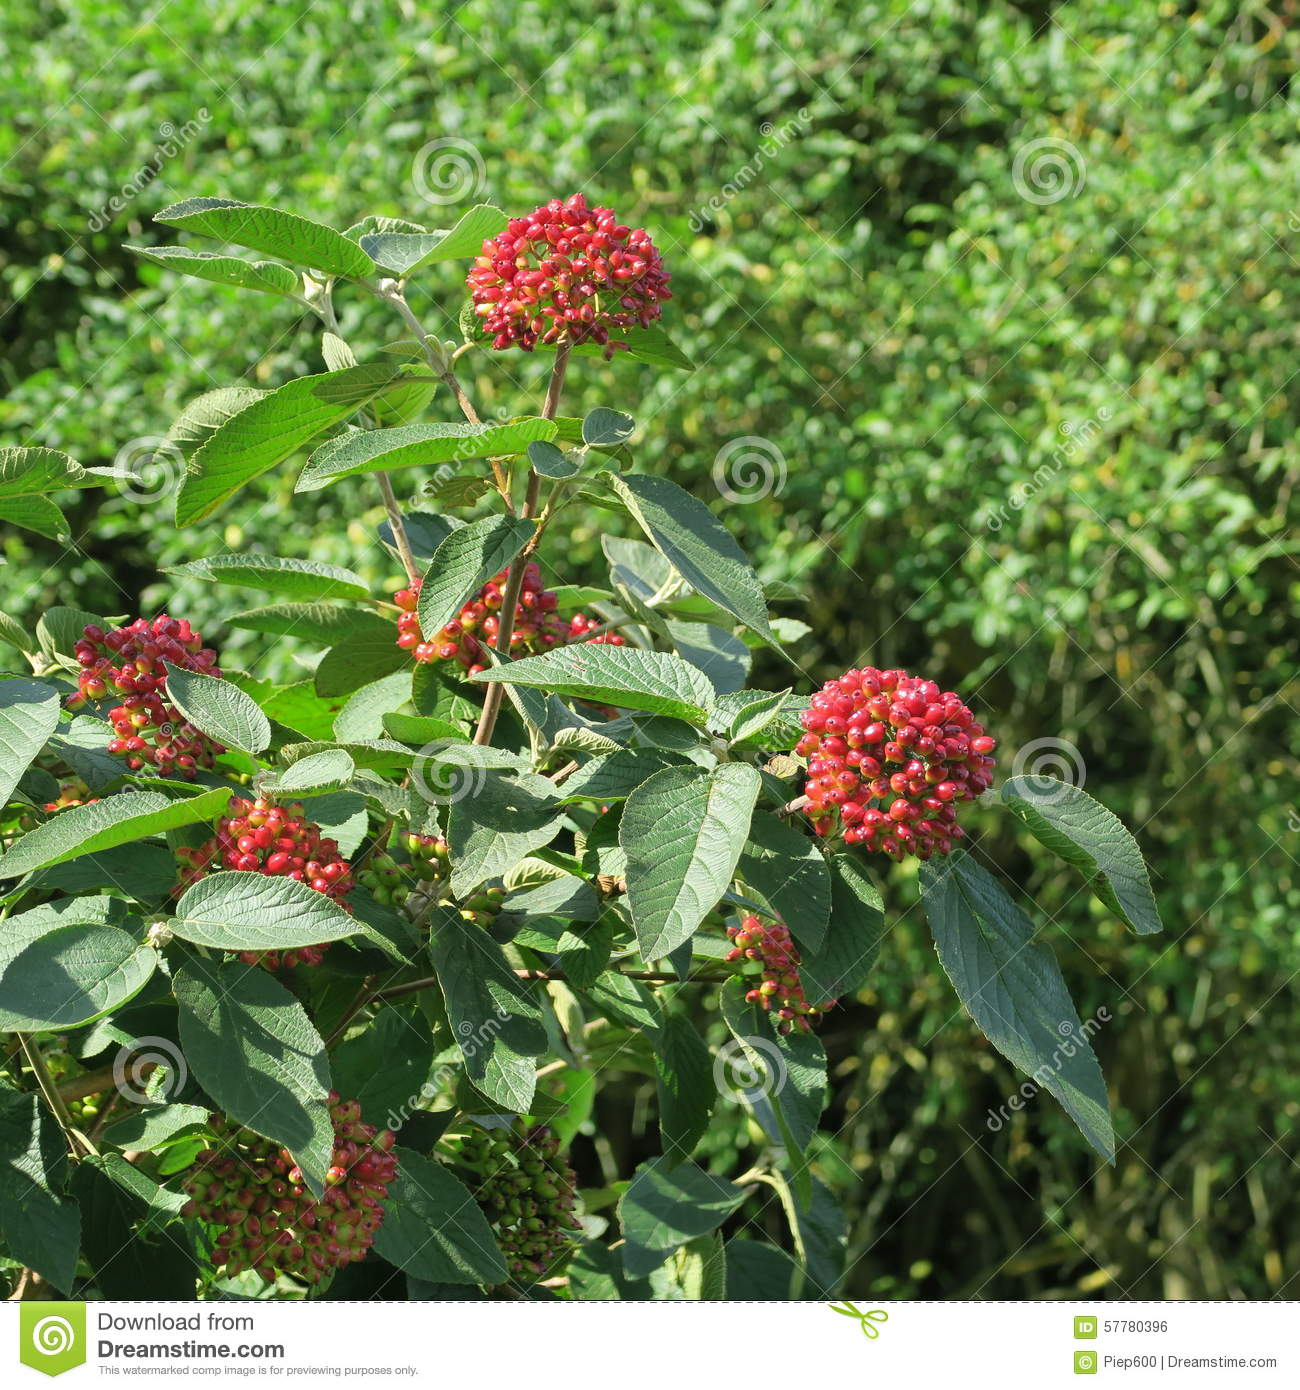 viburnum black singles Black haw, cramp bark, and wild yam when there is uterine cramping in the absence of cervical dilatation, cramp bark (viburnum opulus) and black haw (viburnum prunifolium) are used to arrest uterine spasm 49, 50 these herbs, which can be used interchangeably or together for this purpose, have a long history of use as spasmolytics during .